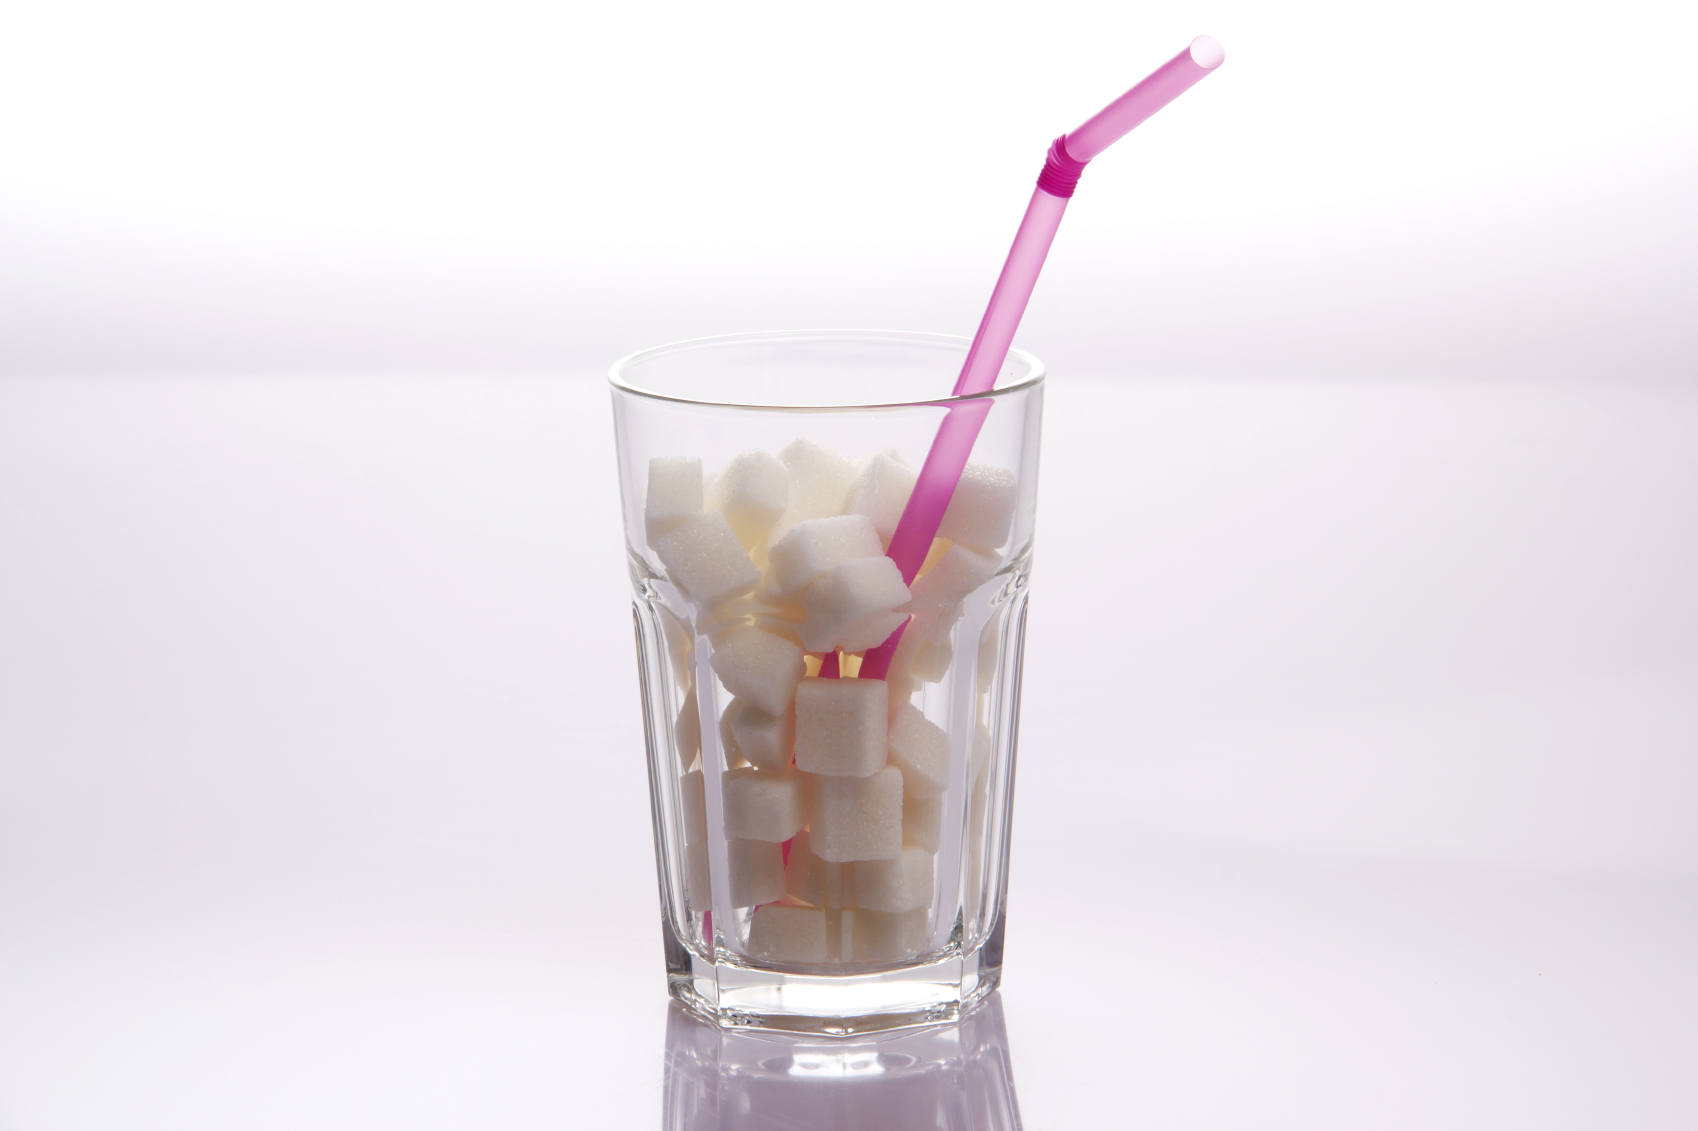 Sugar vs. high-fructose corn syrup: Is one sweetener worse for your health?